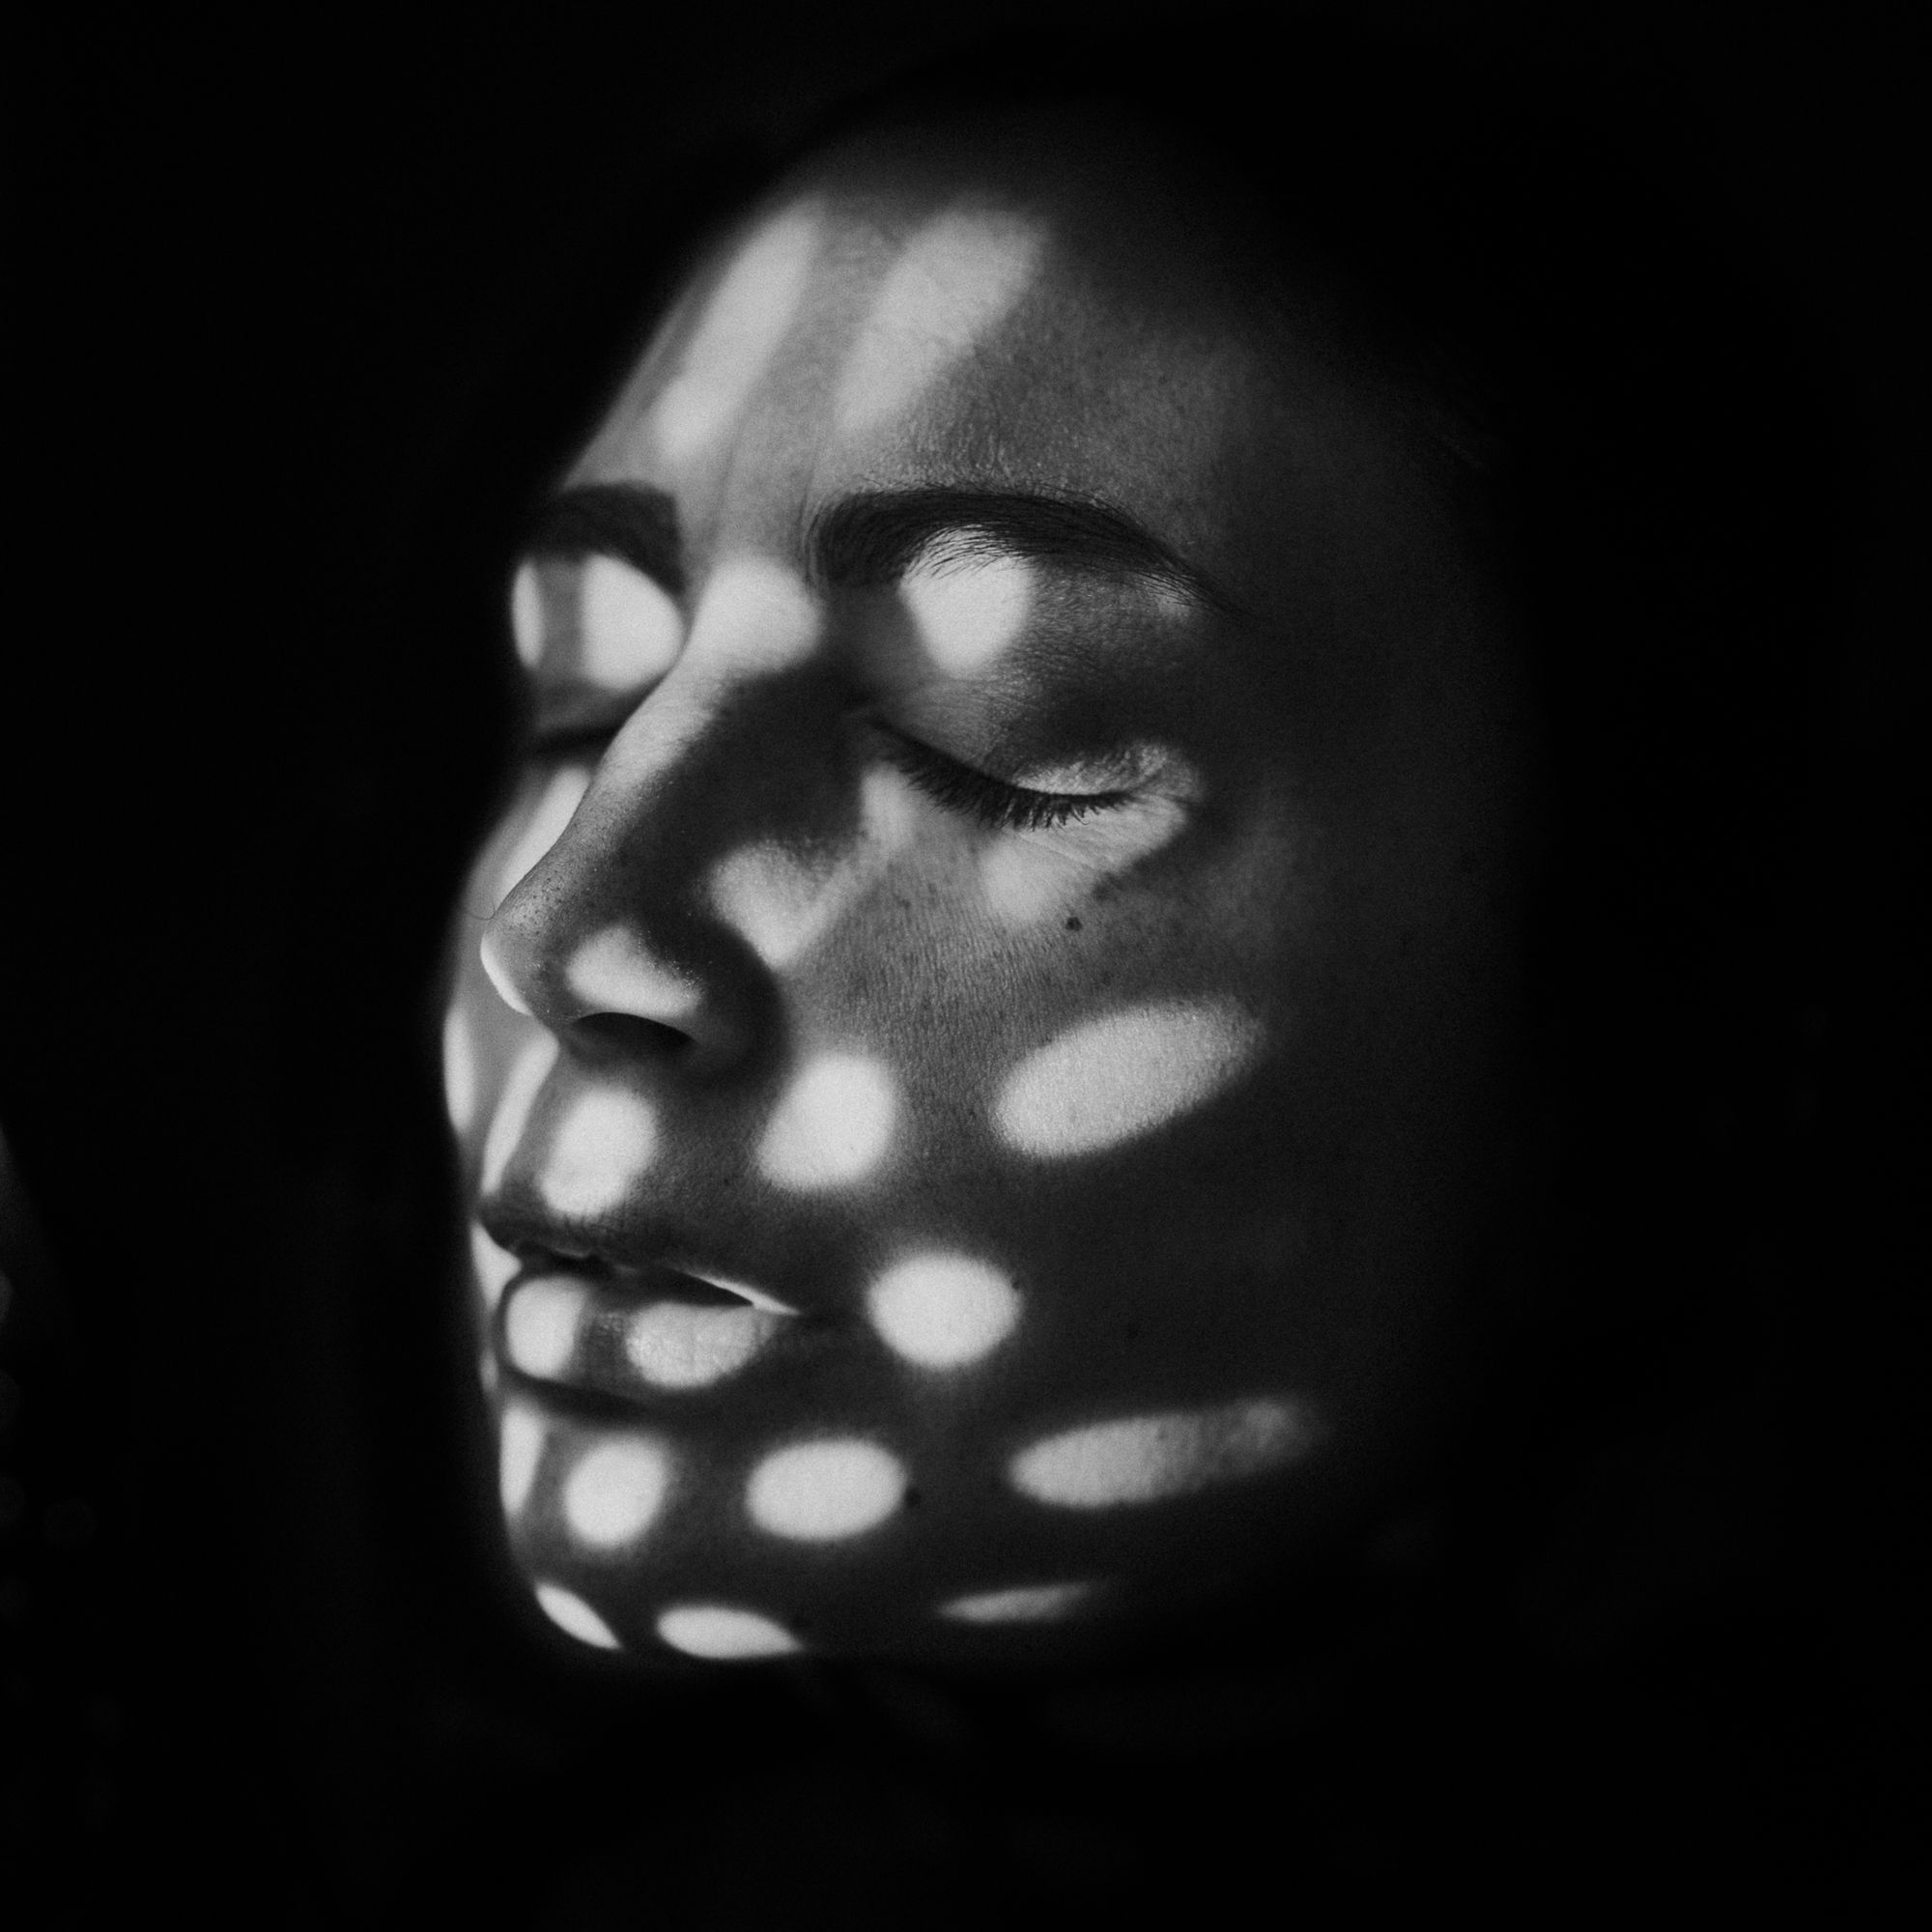 Abstract Light And Shadow B W Self Portrait Dramatic Portrait